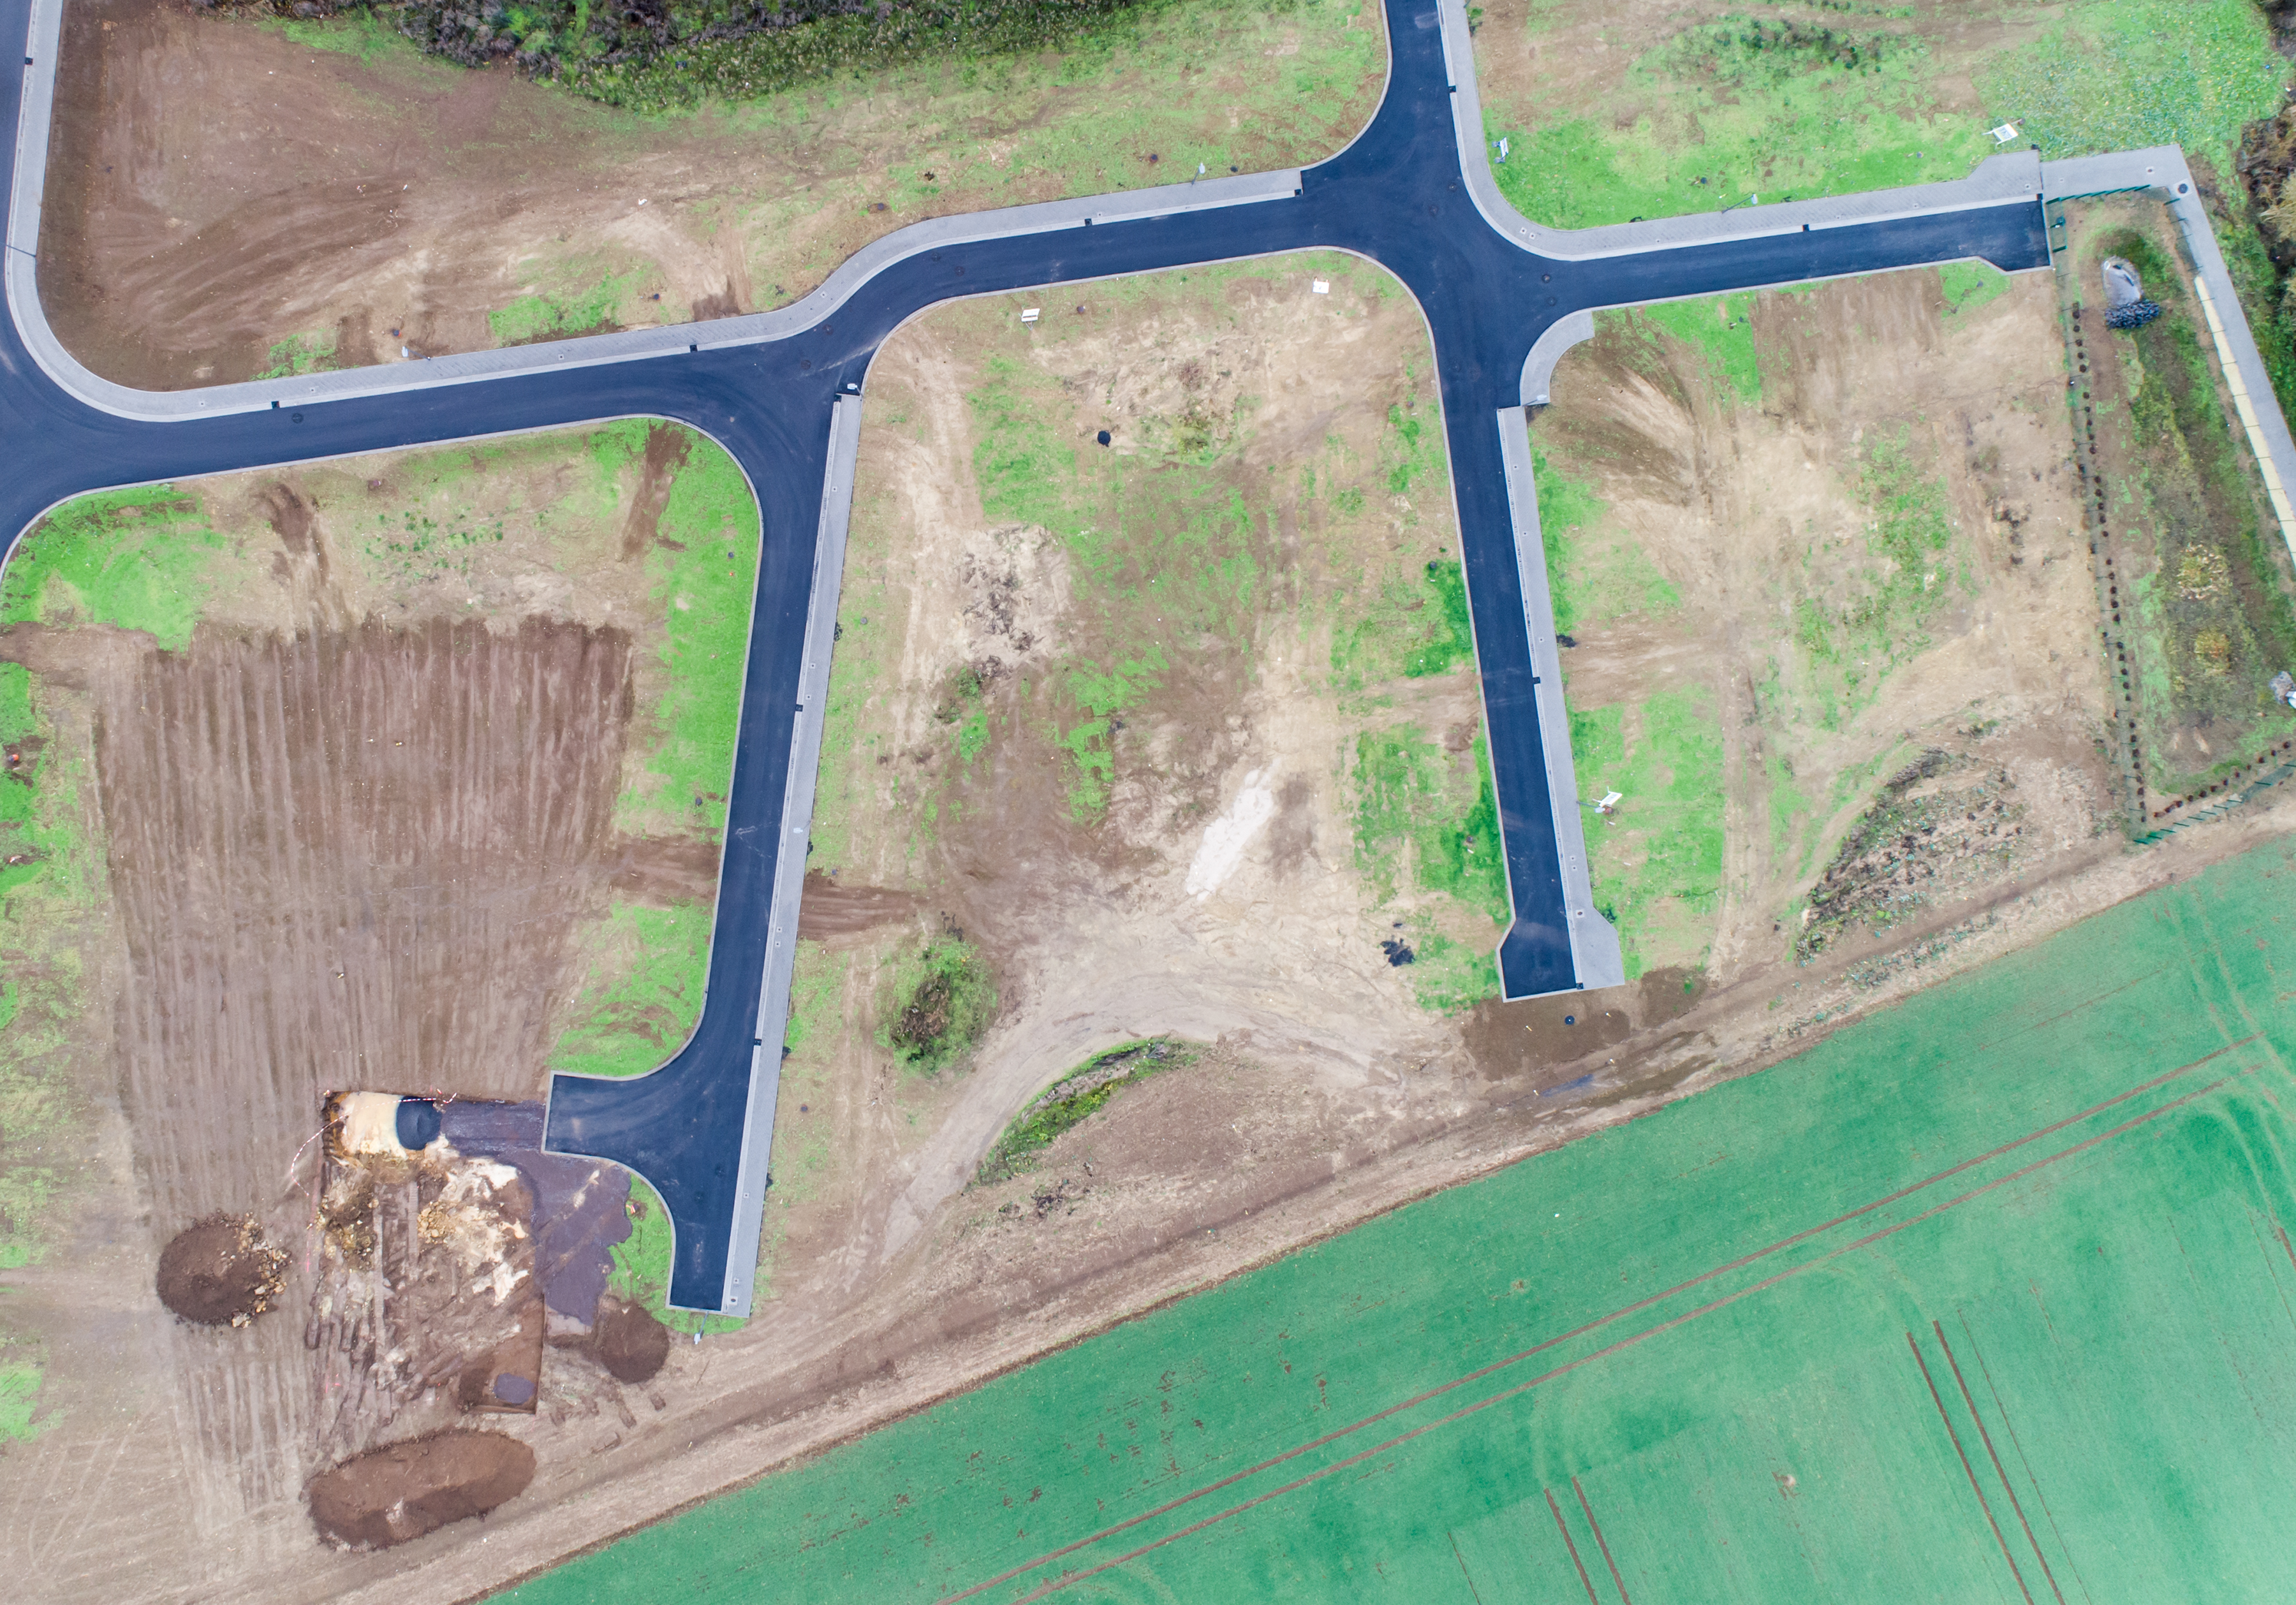 Aerial view of road streets guidelines new development area for real estate mome building arable area green Germany.